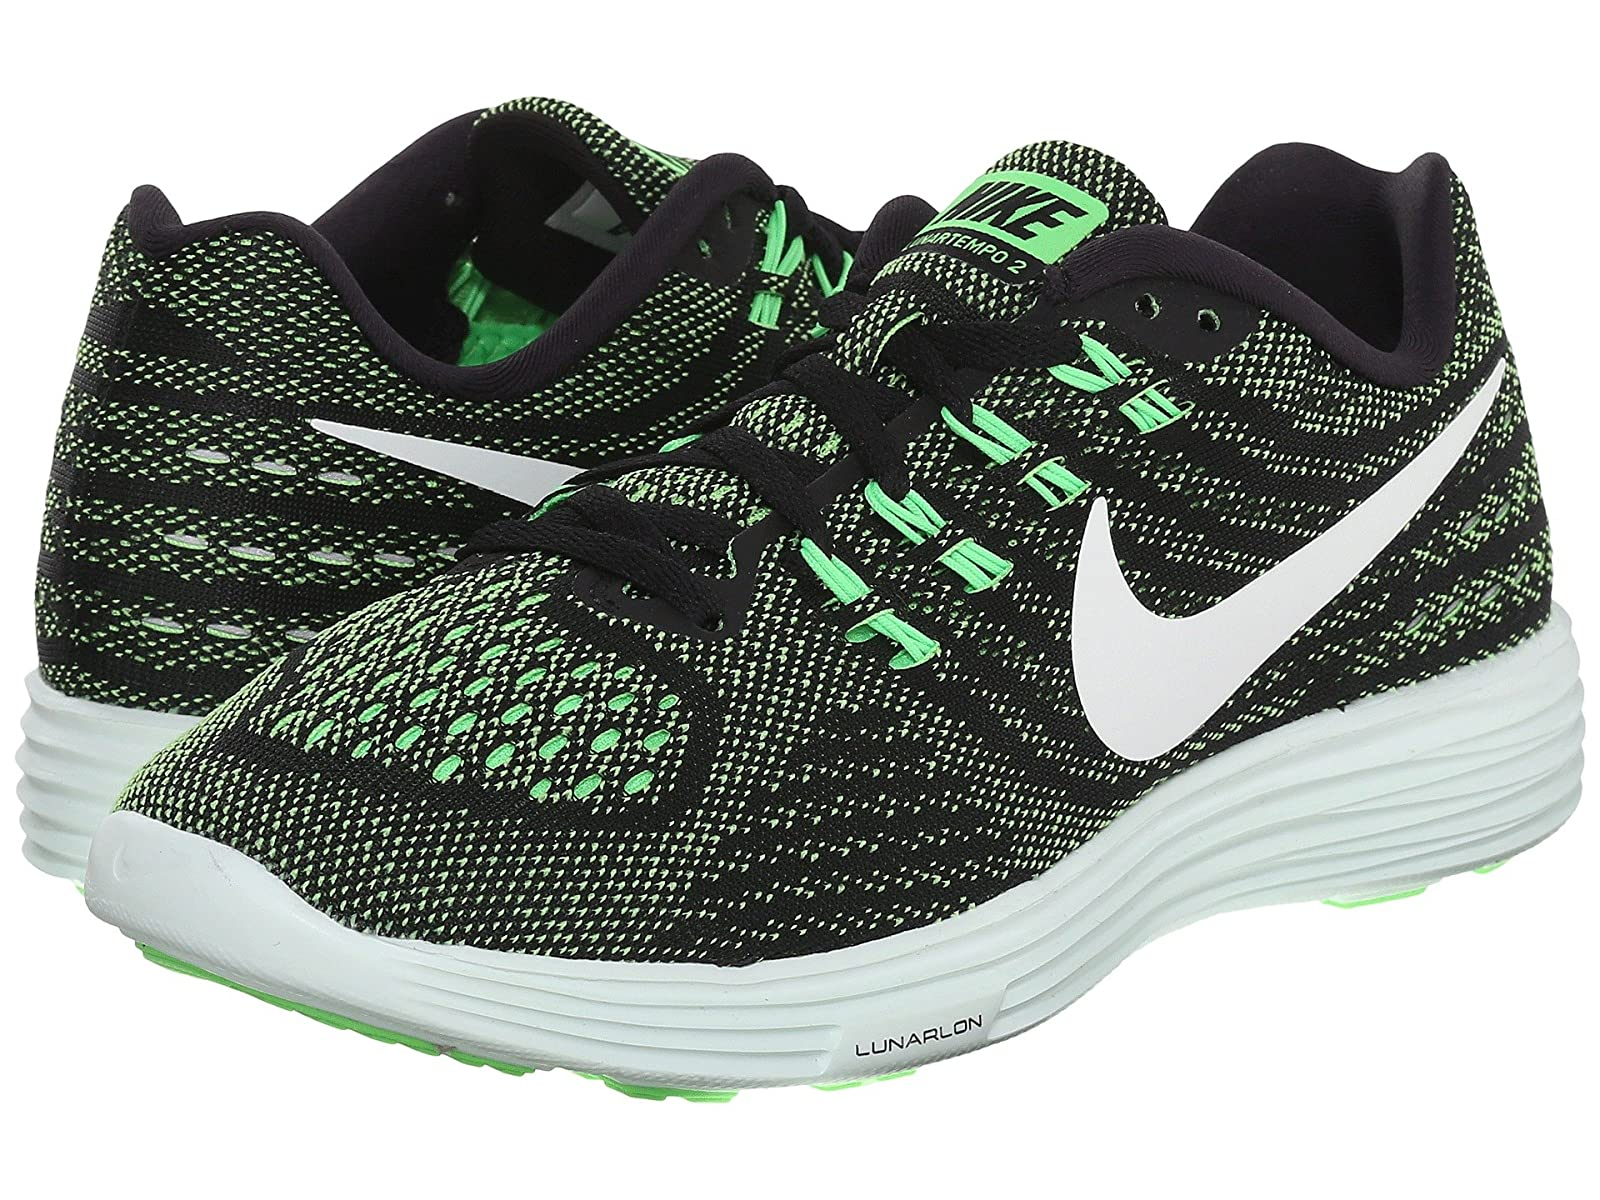 Nike Lunartempo 2Cheap and distinctive eye-catching shoes